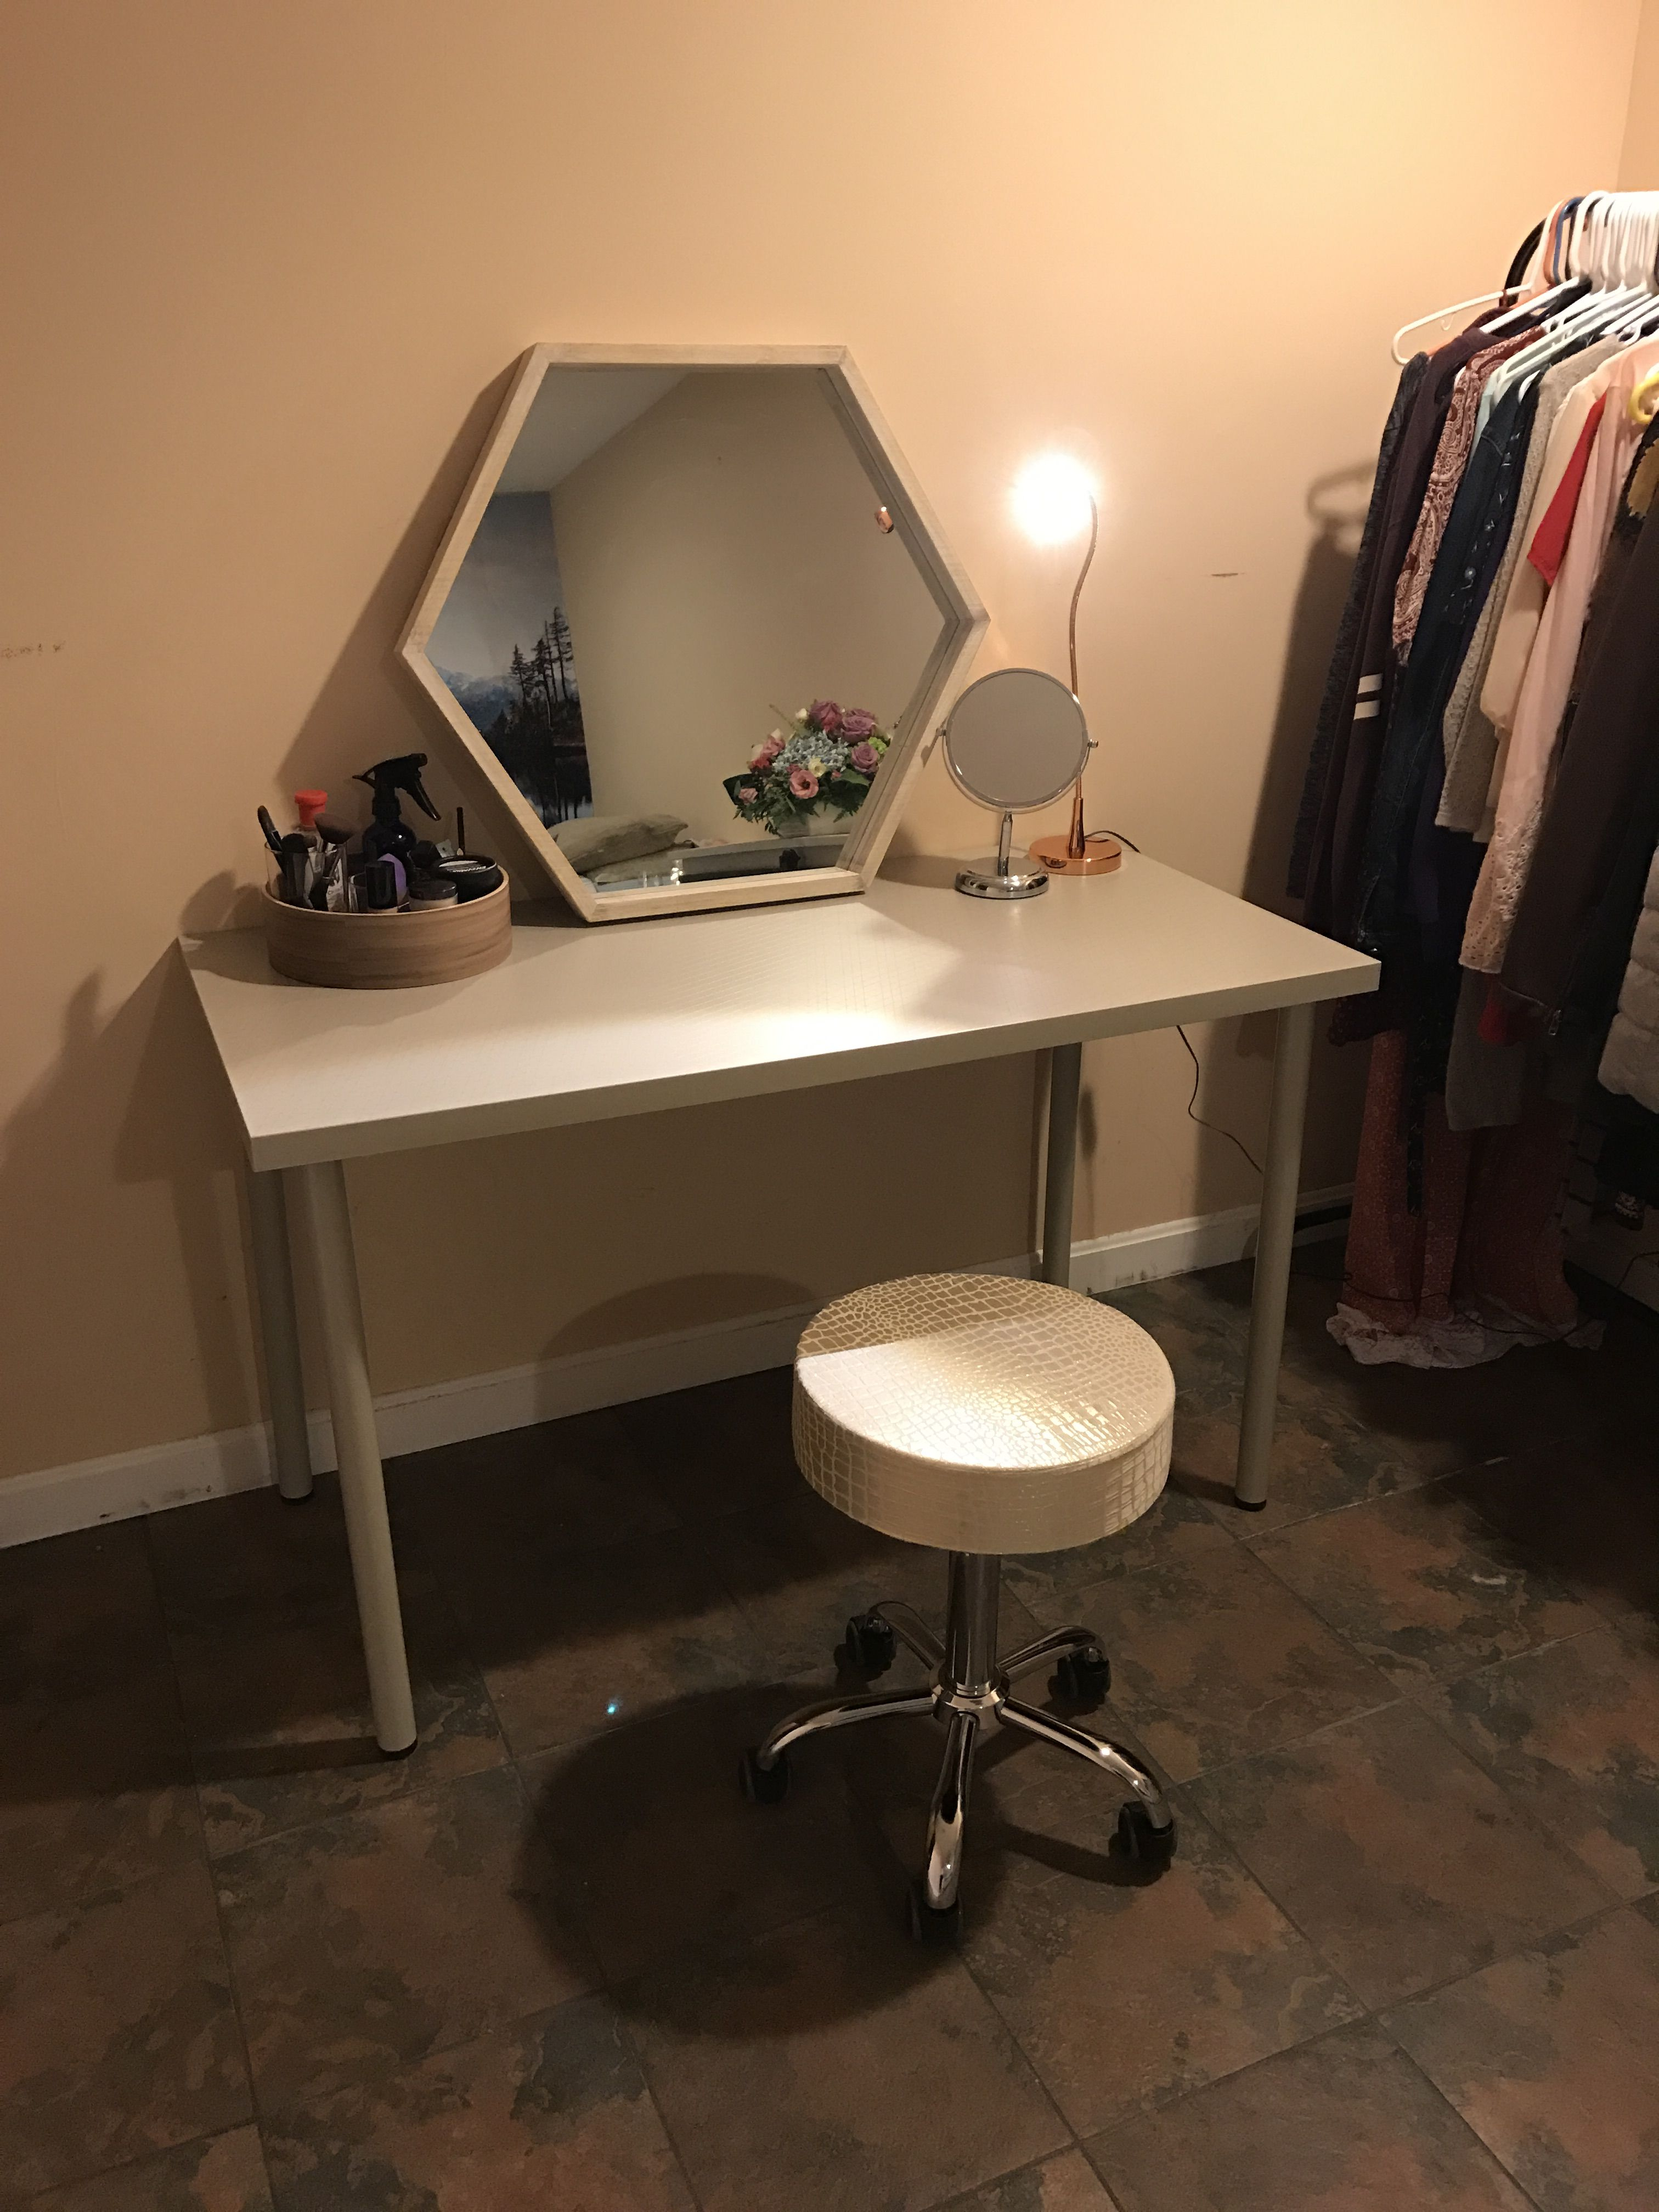 Simple Vanity Set Up By Me Desk From Ikea Everything Else Home